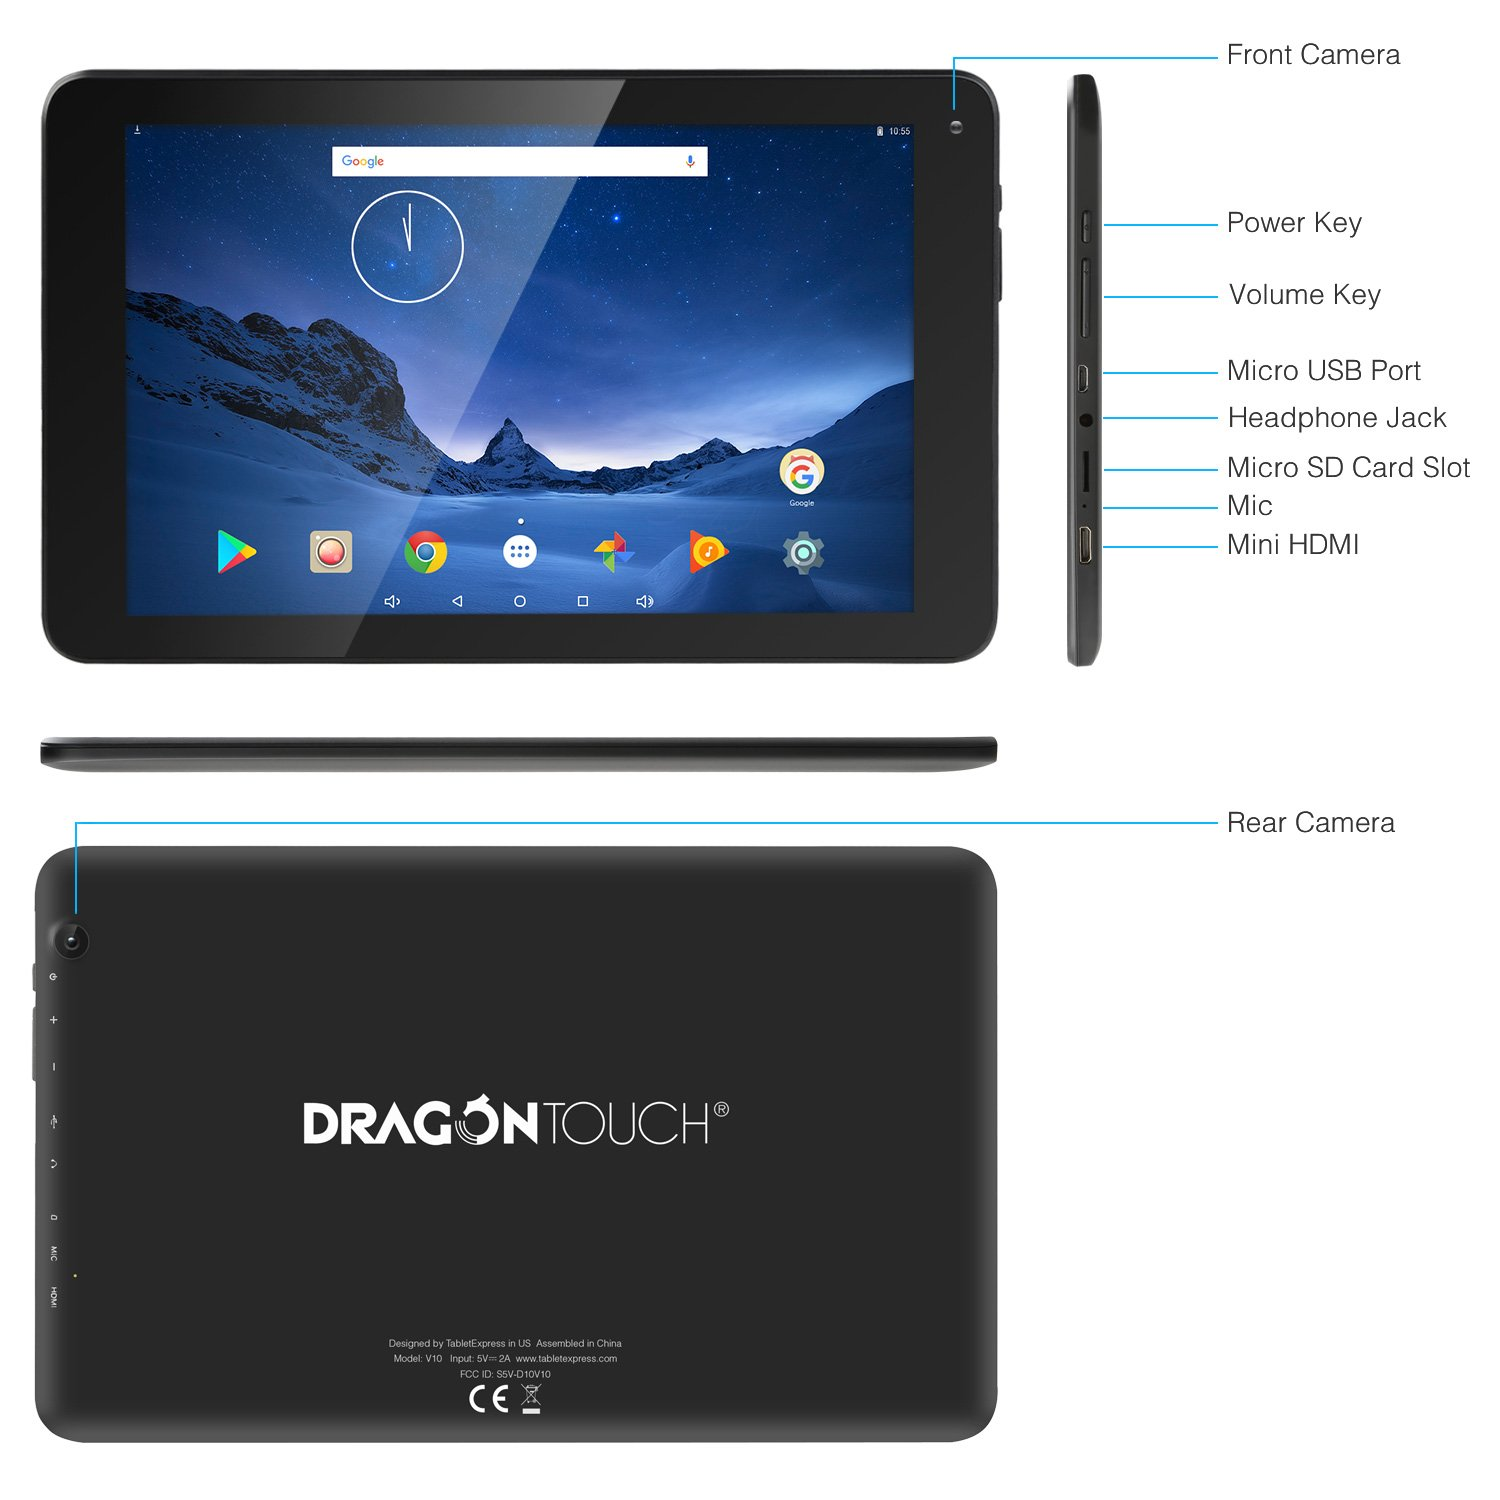 Dragon Touch V10 10.1 inch Tablet Android 7.0 Nougat MTK Quad Core 1GB RAM 16GB Storage, 800x1280 IPS Display with Mini HDMI GPS by Dragon Touch (Image #3)